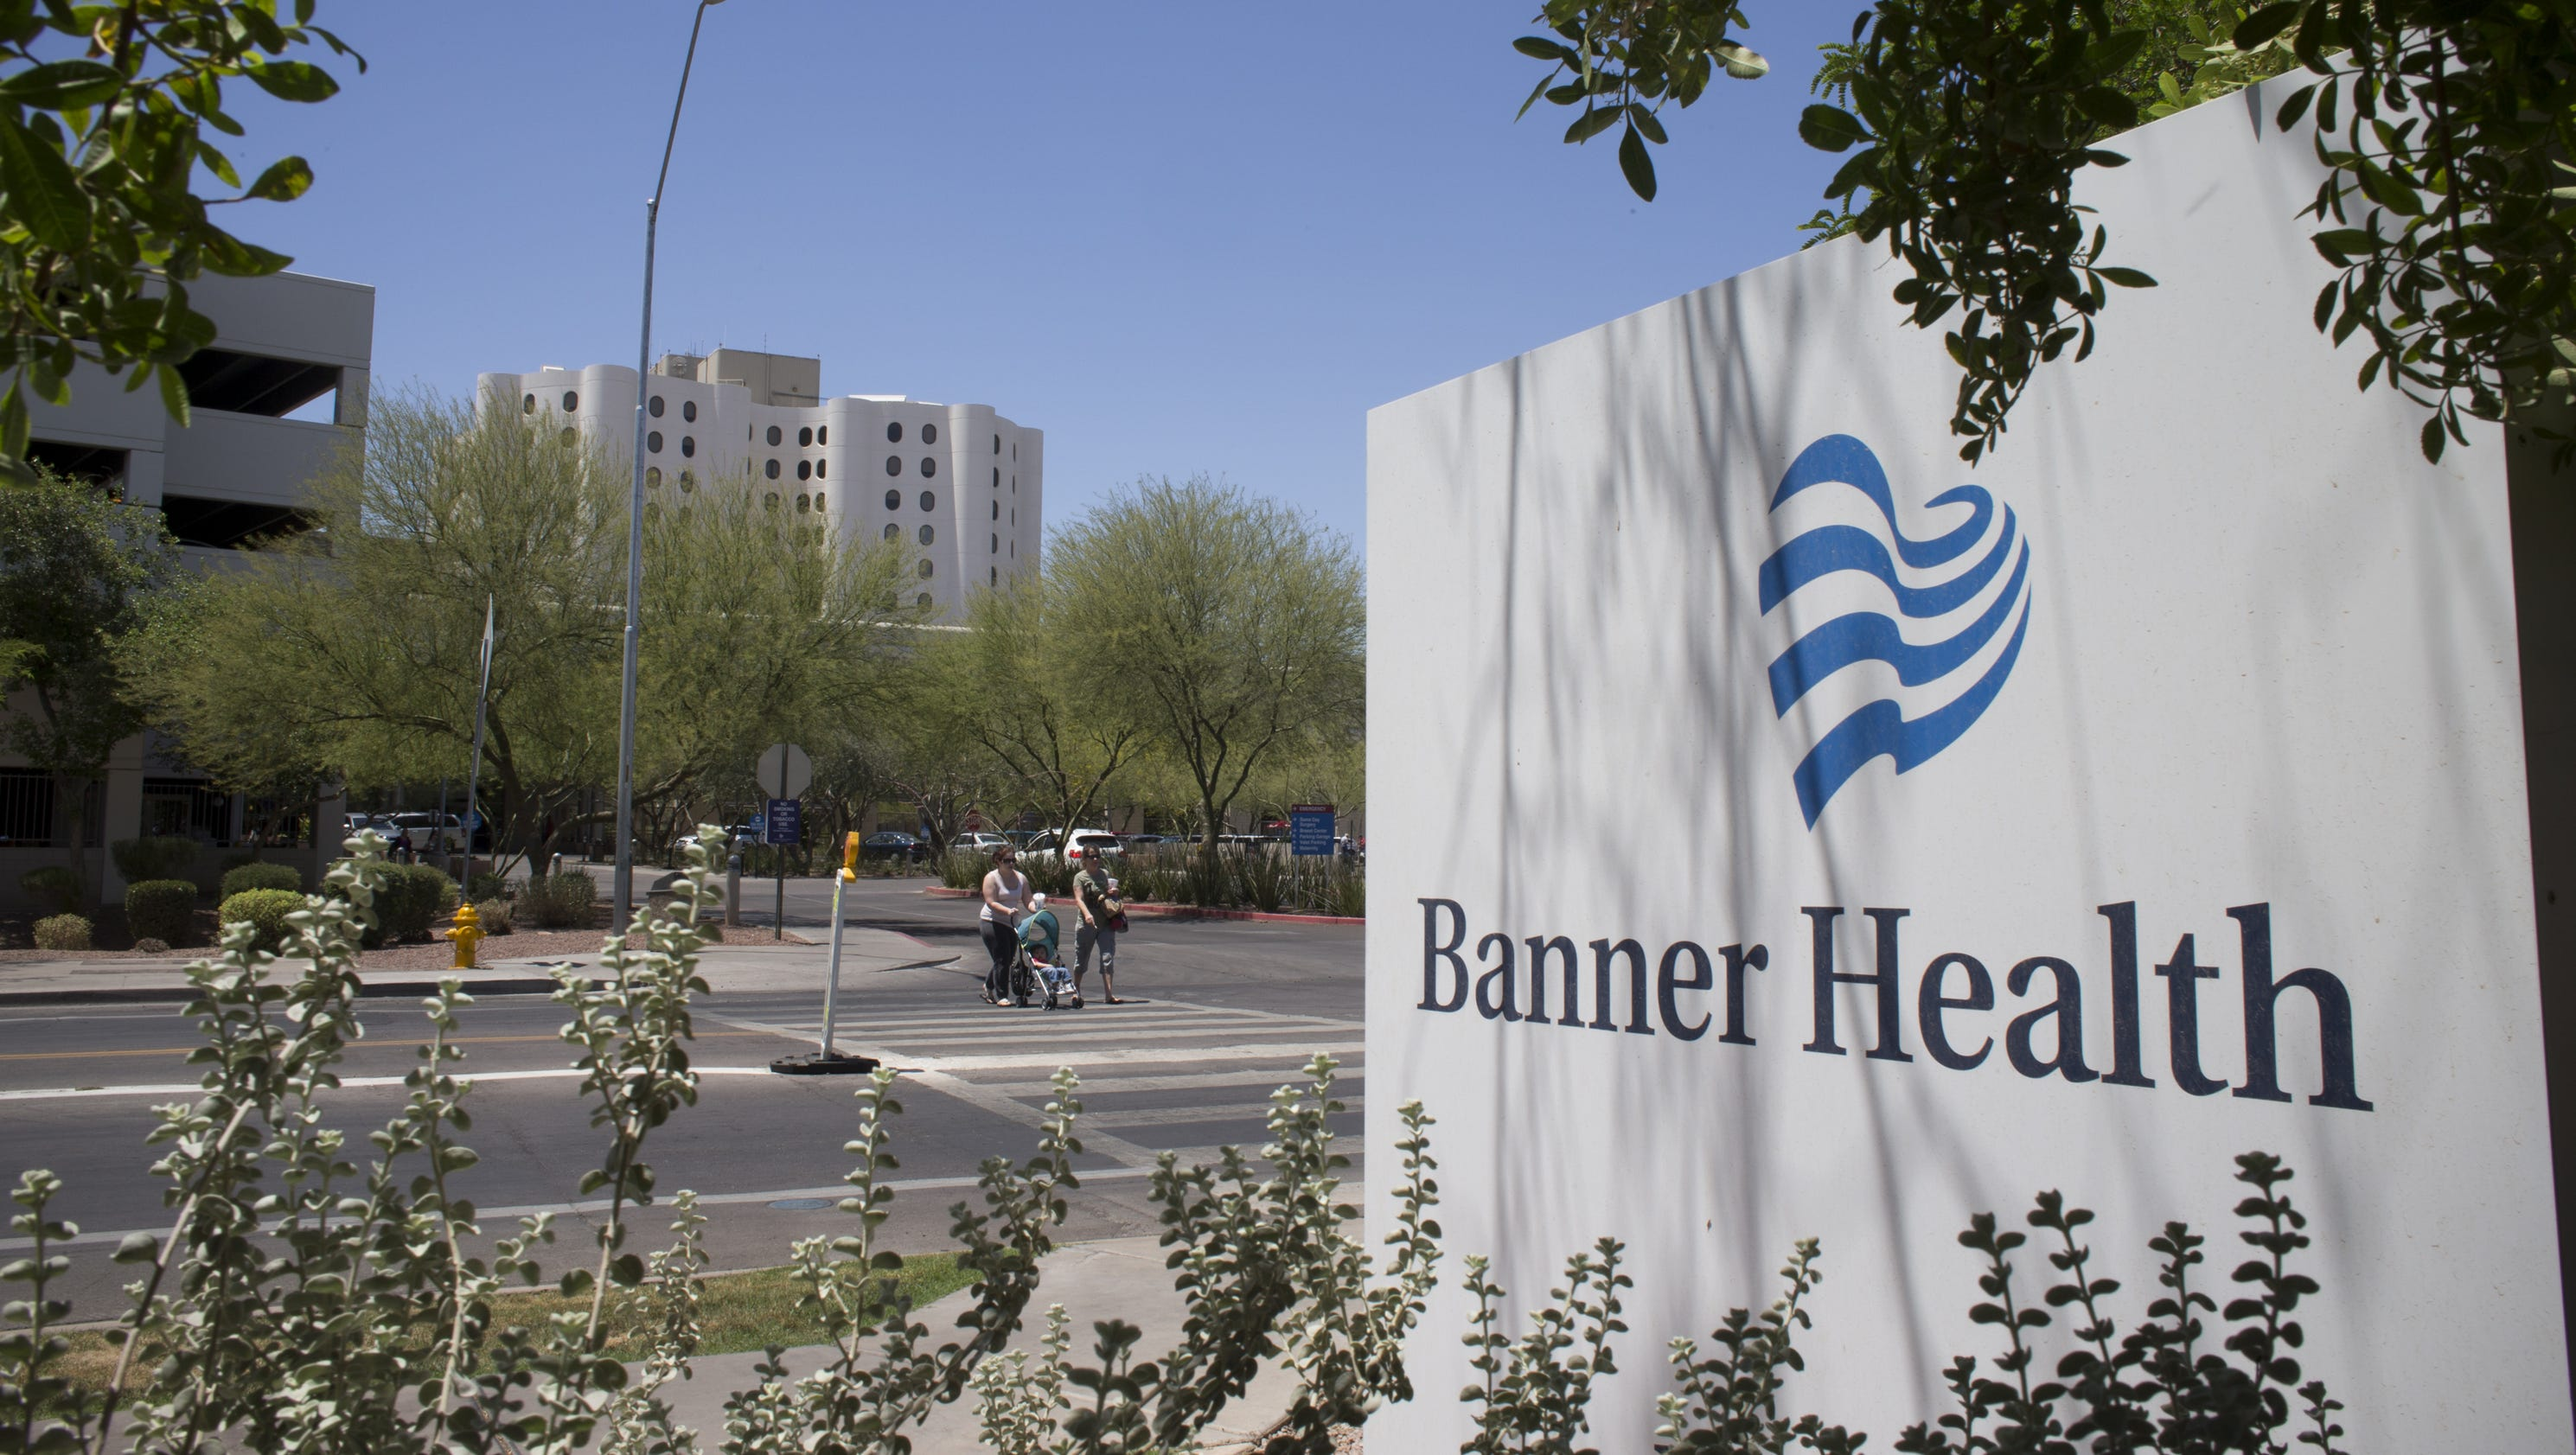 banner health will undergo restructuring of operations